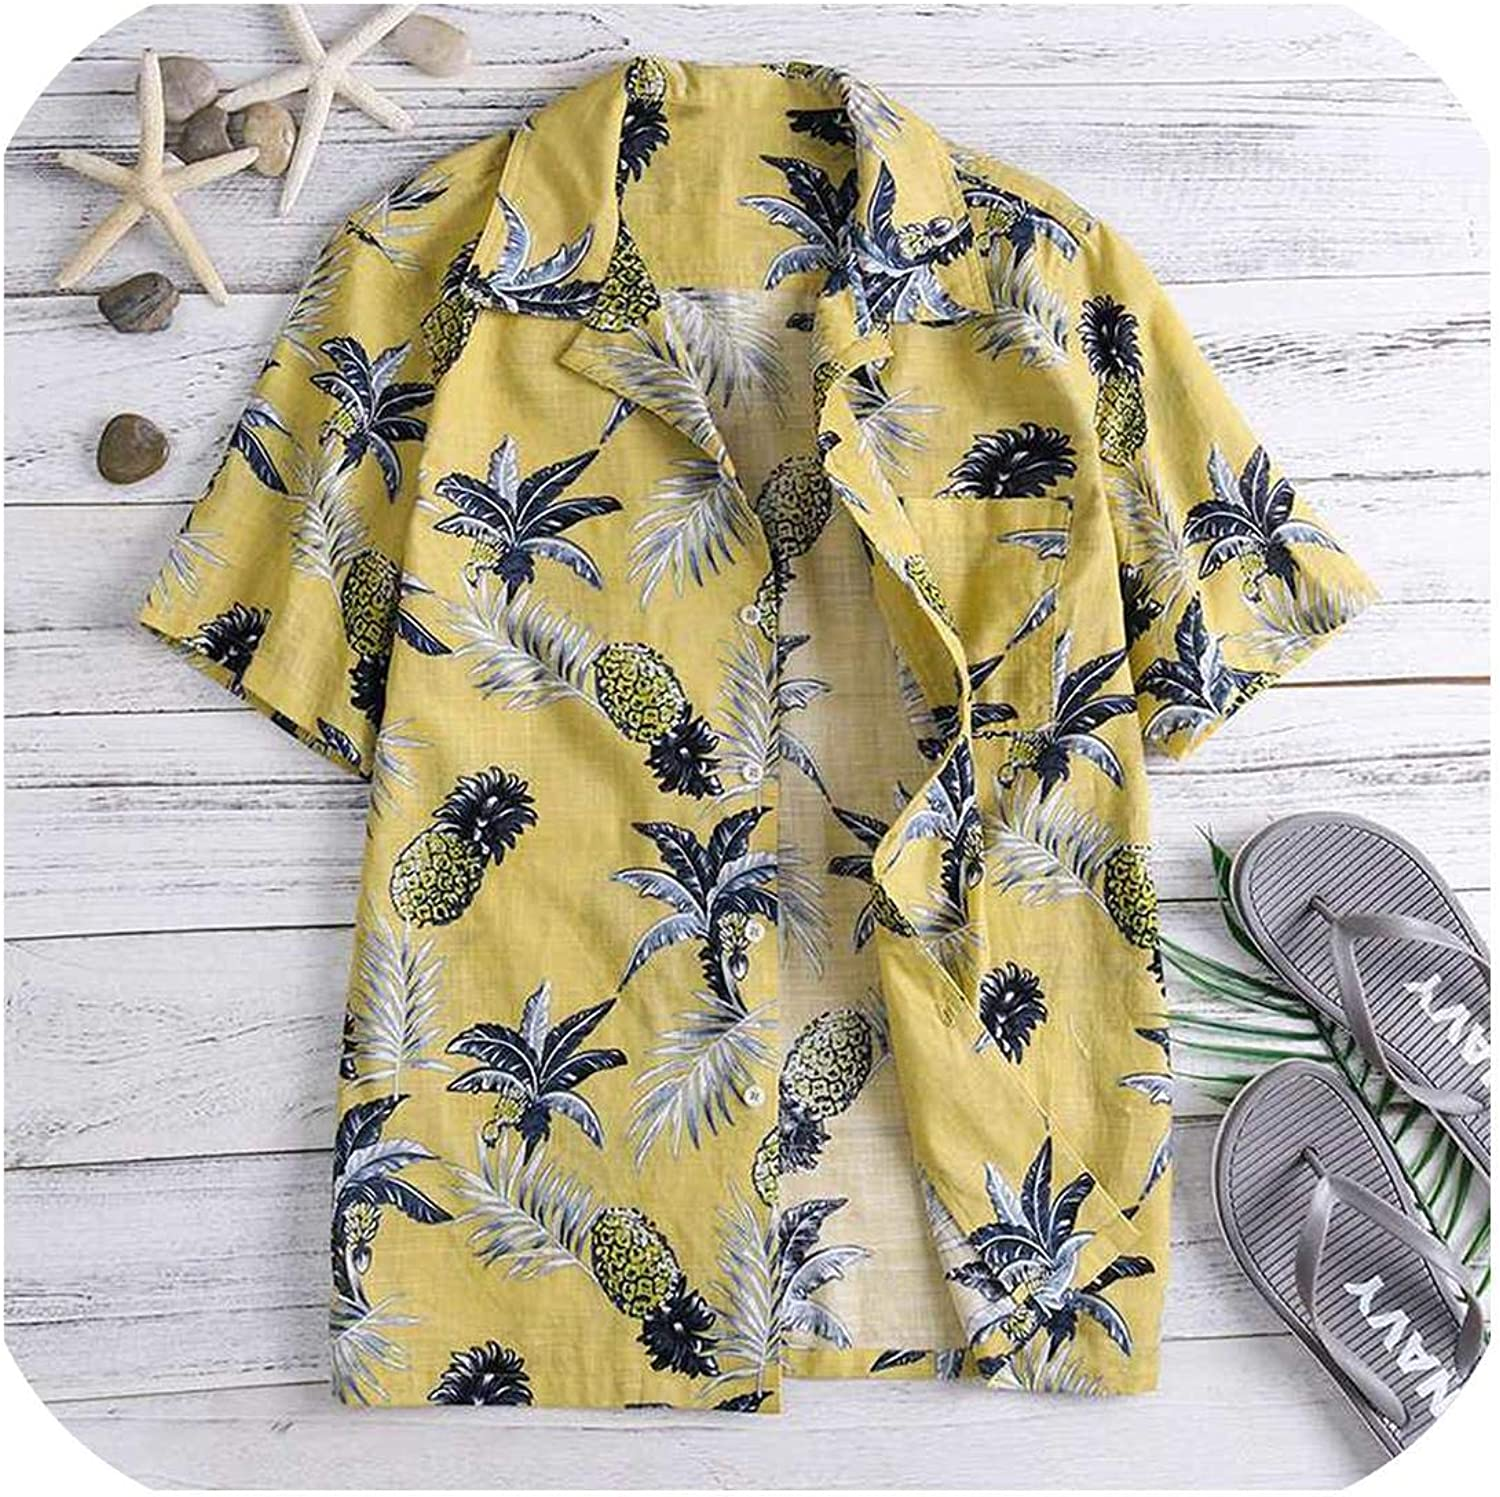 Hawaiian Shirts Tropical Mens Shirts Dress Short Sleeve Lapel Collar Floral Beach Vacation Clothing